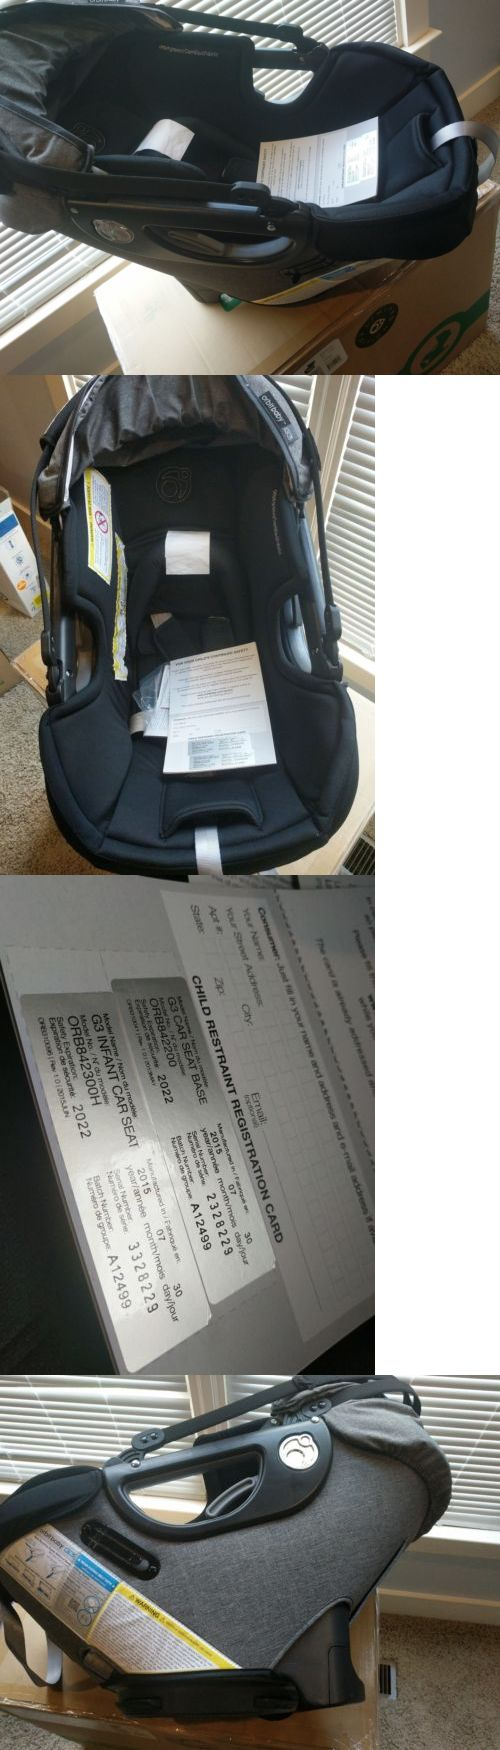 Other Car Safety Seats 2987 Orbit Baby G3 Infant Seat No Base